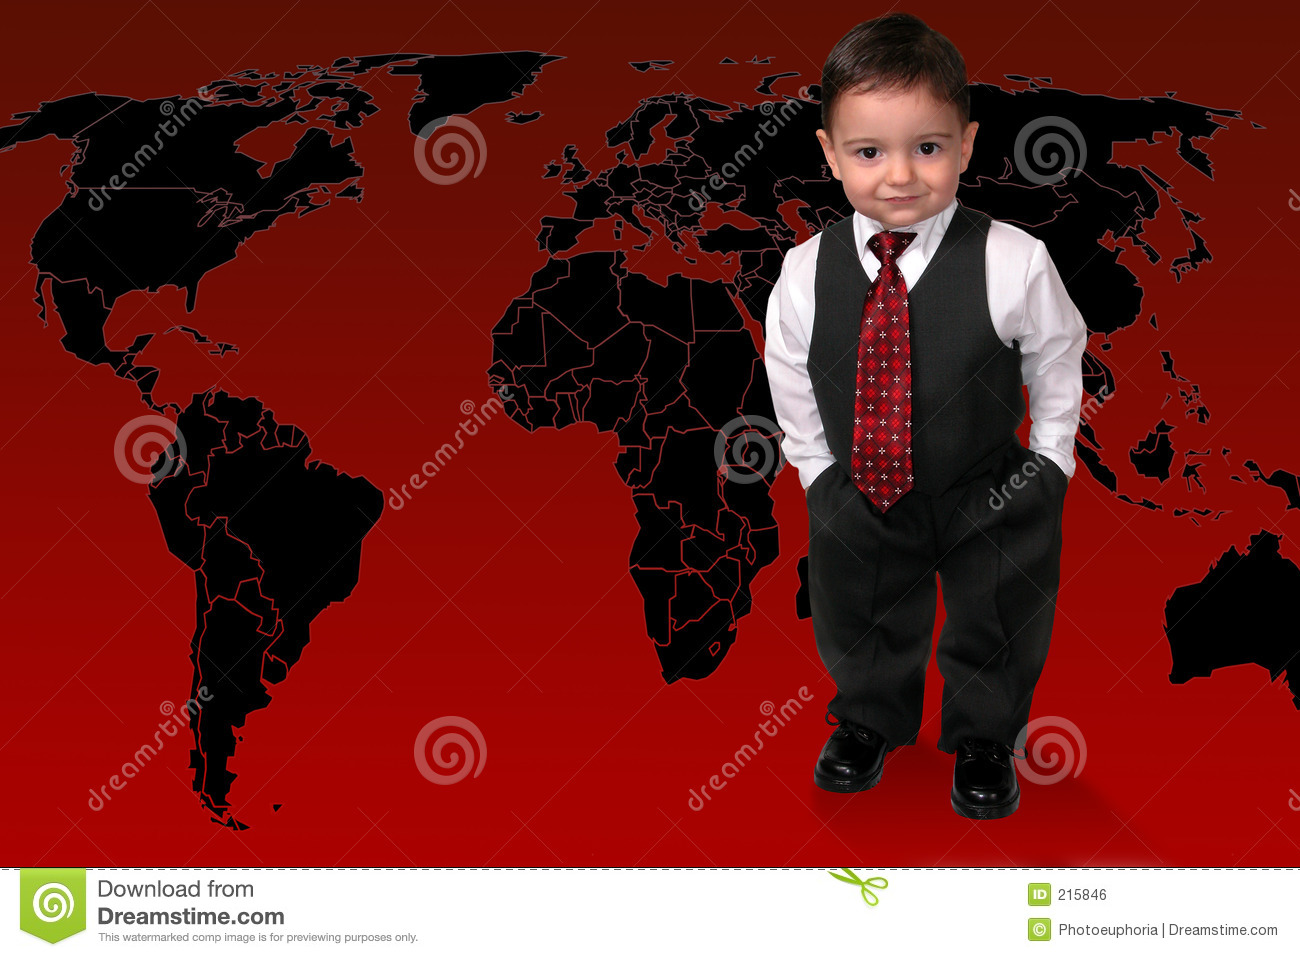 Adorable Toddler Boy In Suit Standing On The World